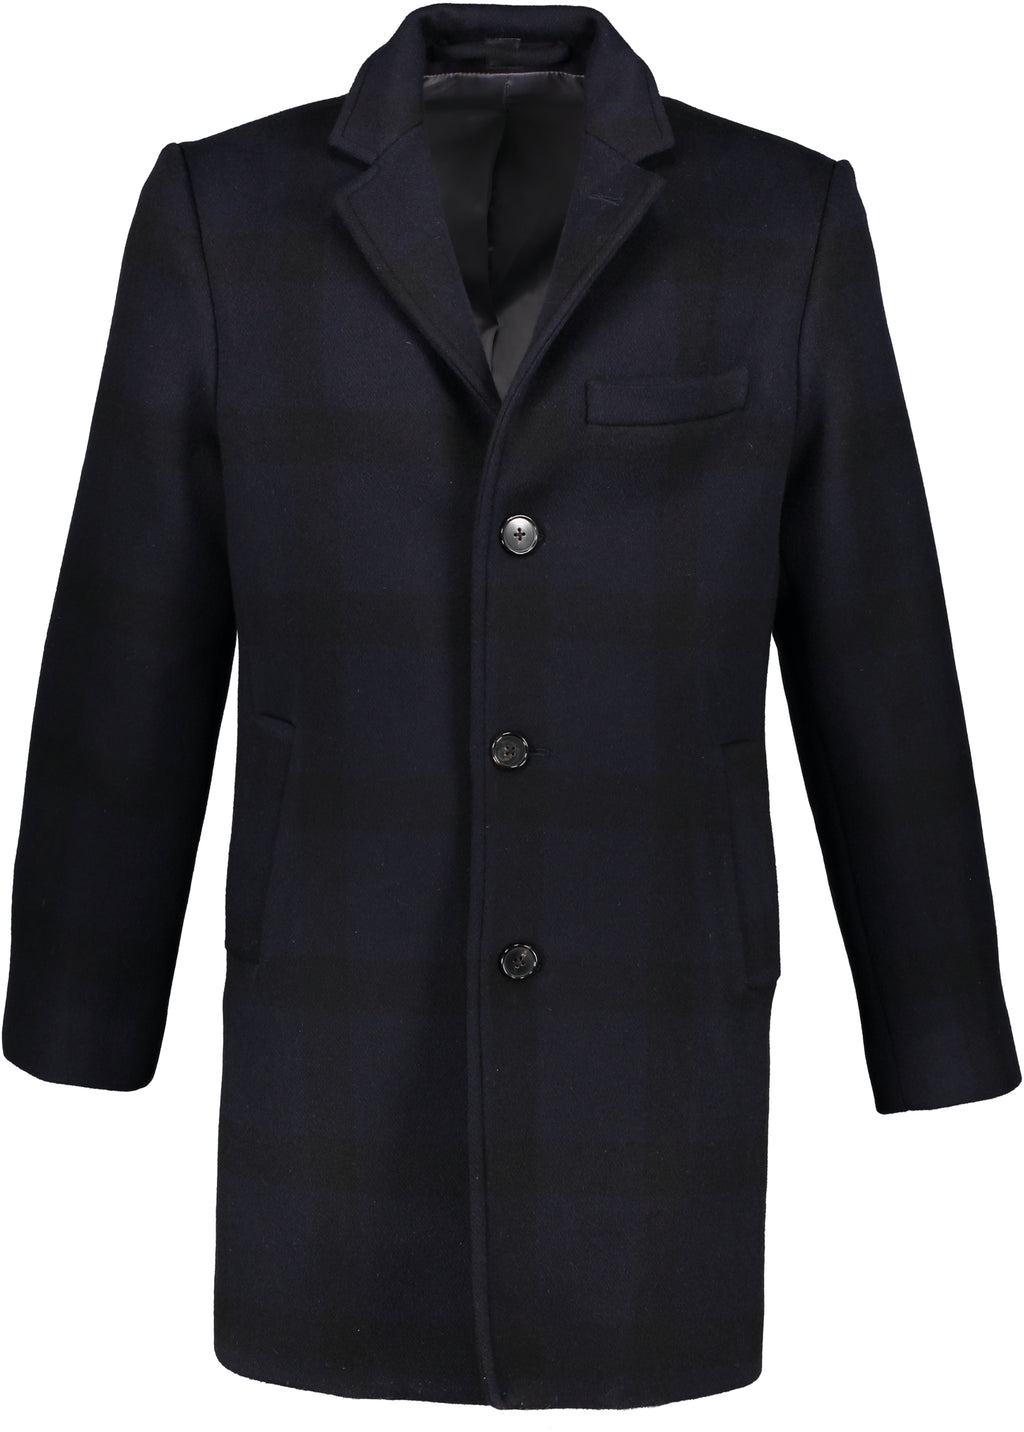 Washington Topcoat in Buffalo Check Half-Cashmere Blend